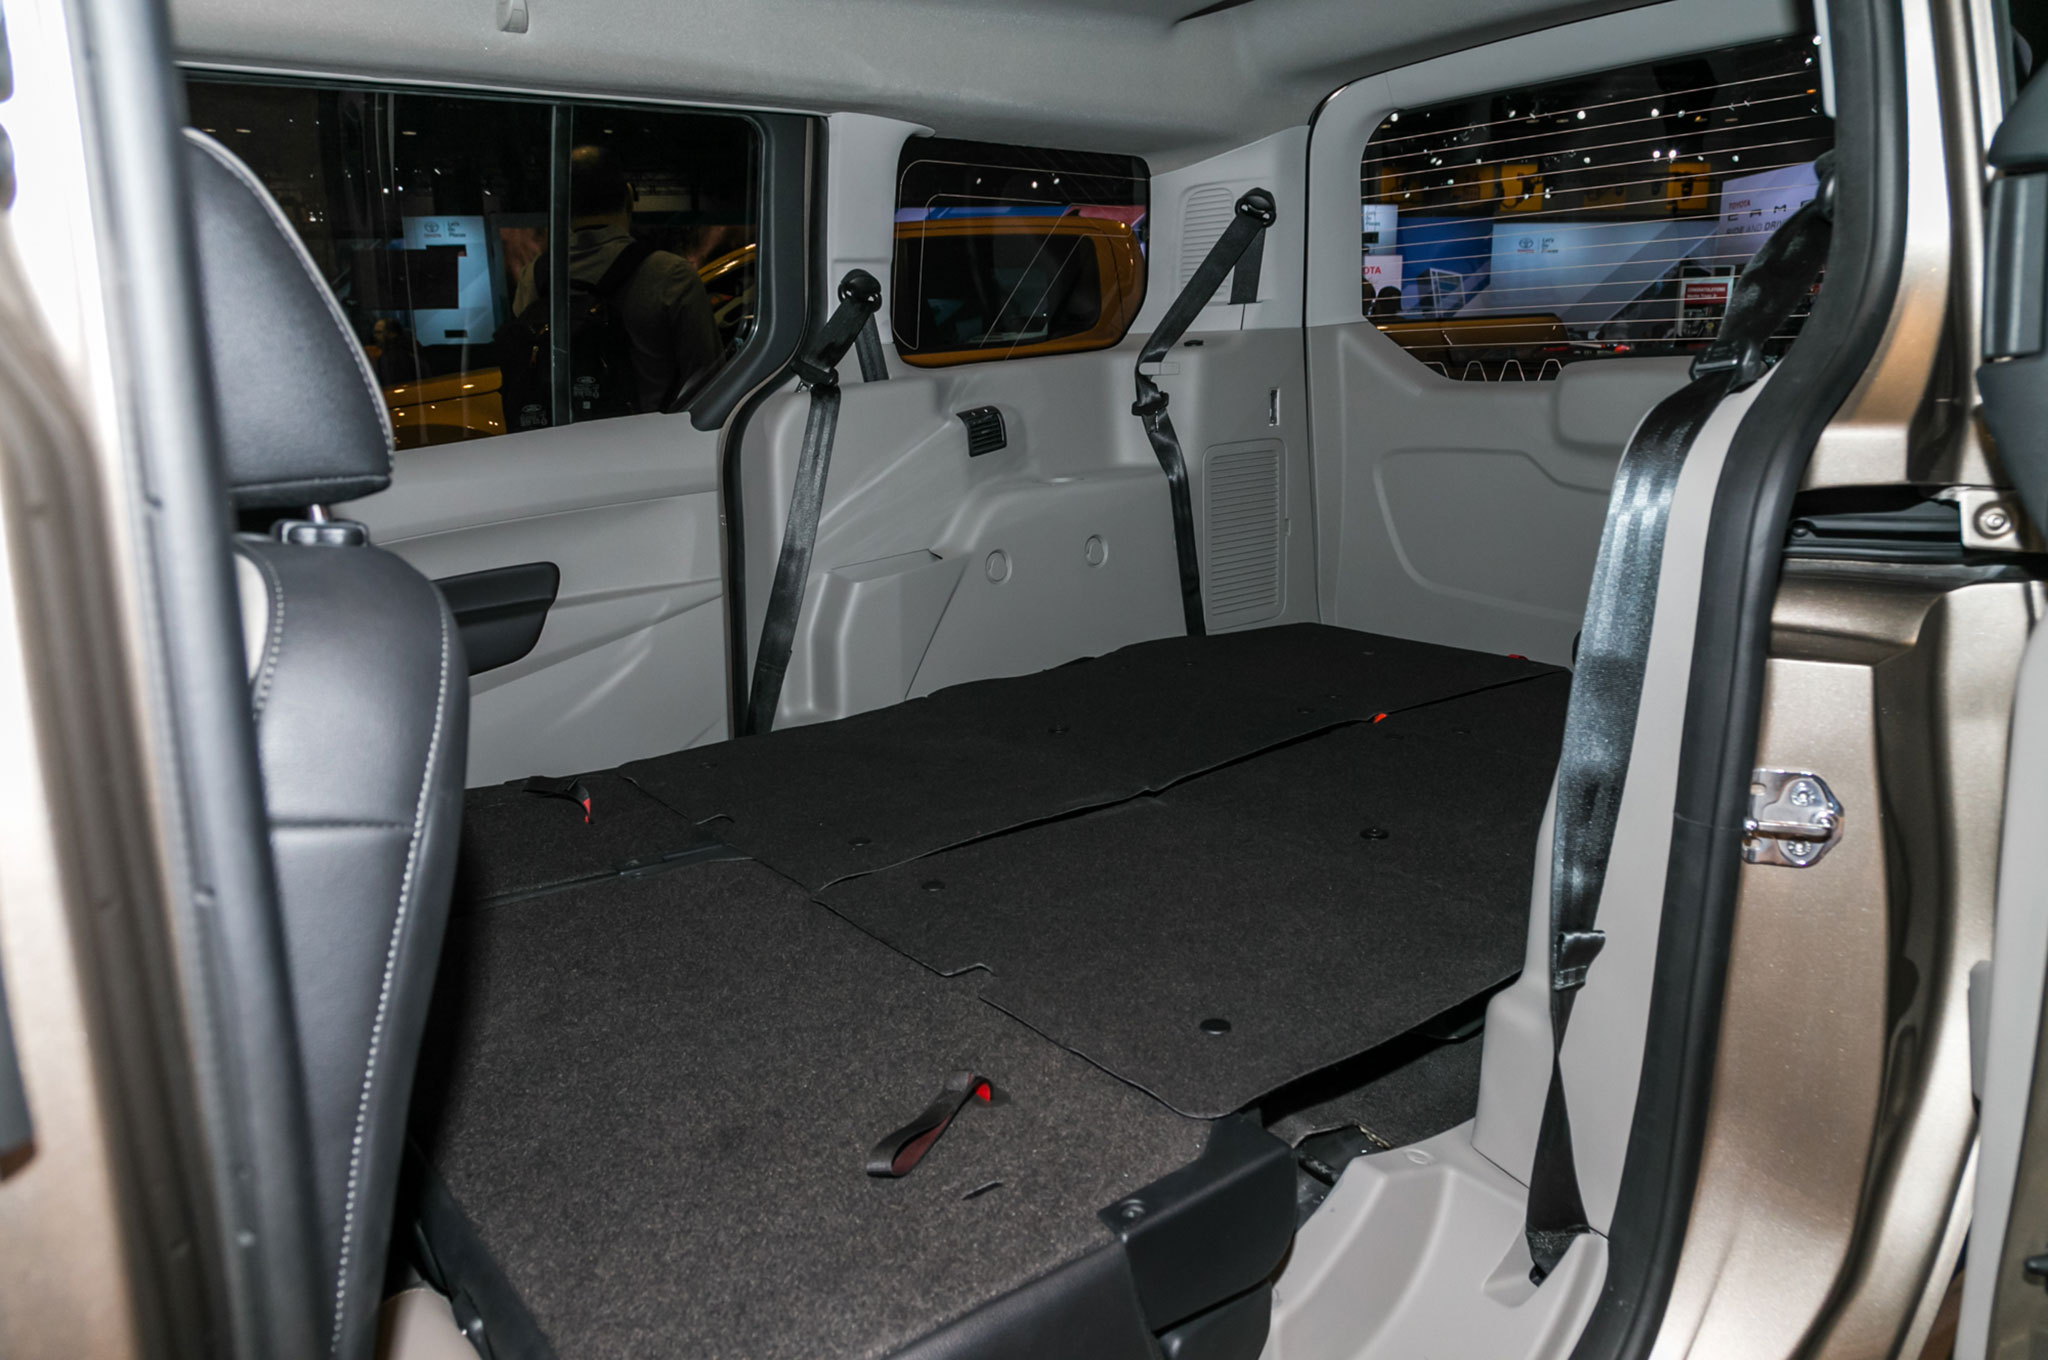 Ford takes on the chrysler pacifica with an updated transit connect wagon automobile magazine for Ford transit wagon 15 passenger interior